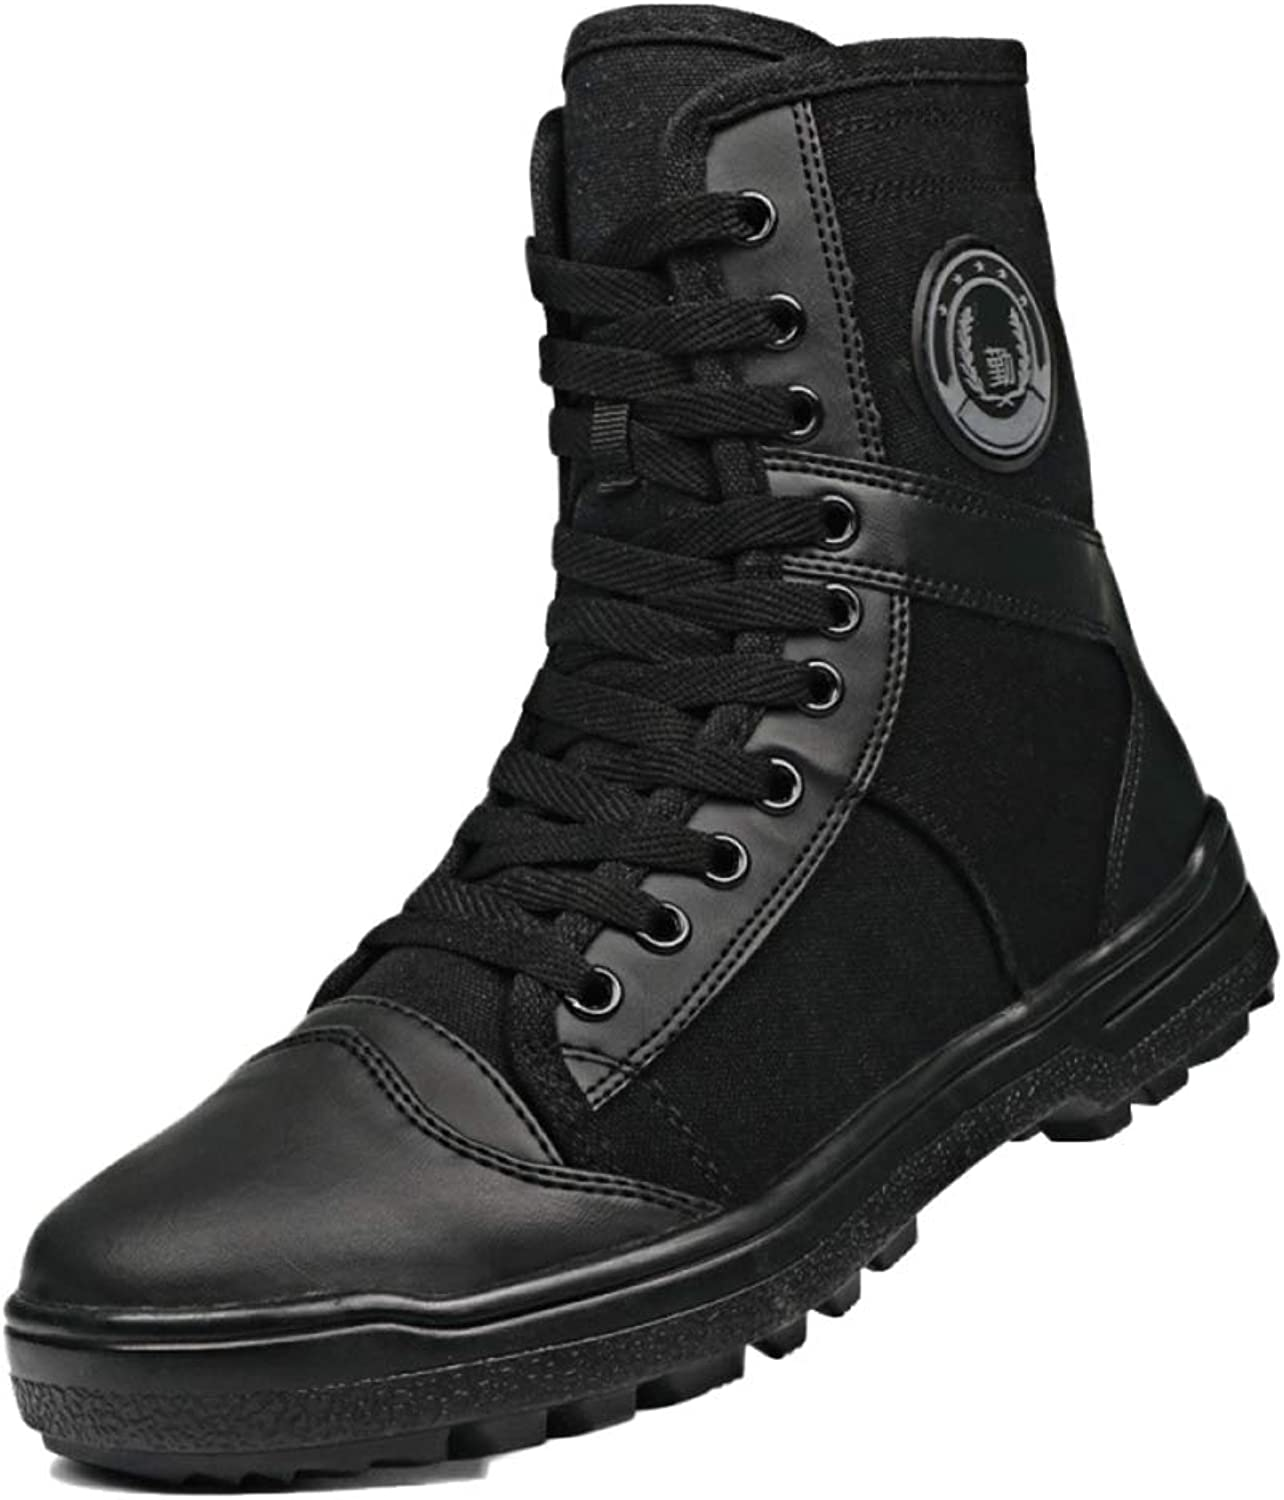 DSFGHE Men Boots Tactical Military Summer Boots Training Combat Breathable High-toplightweight